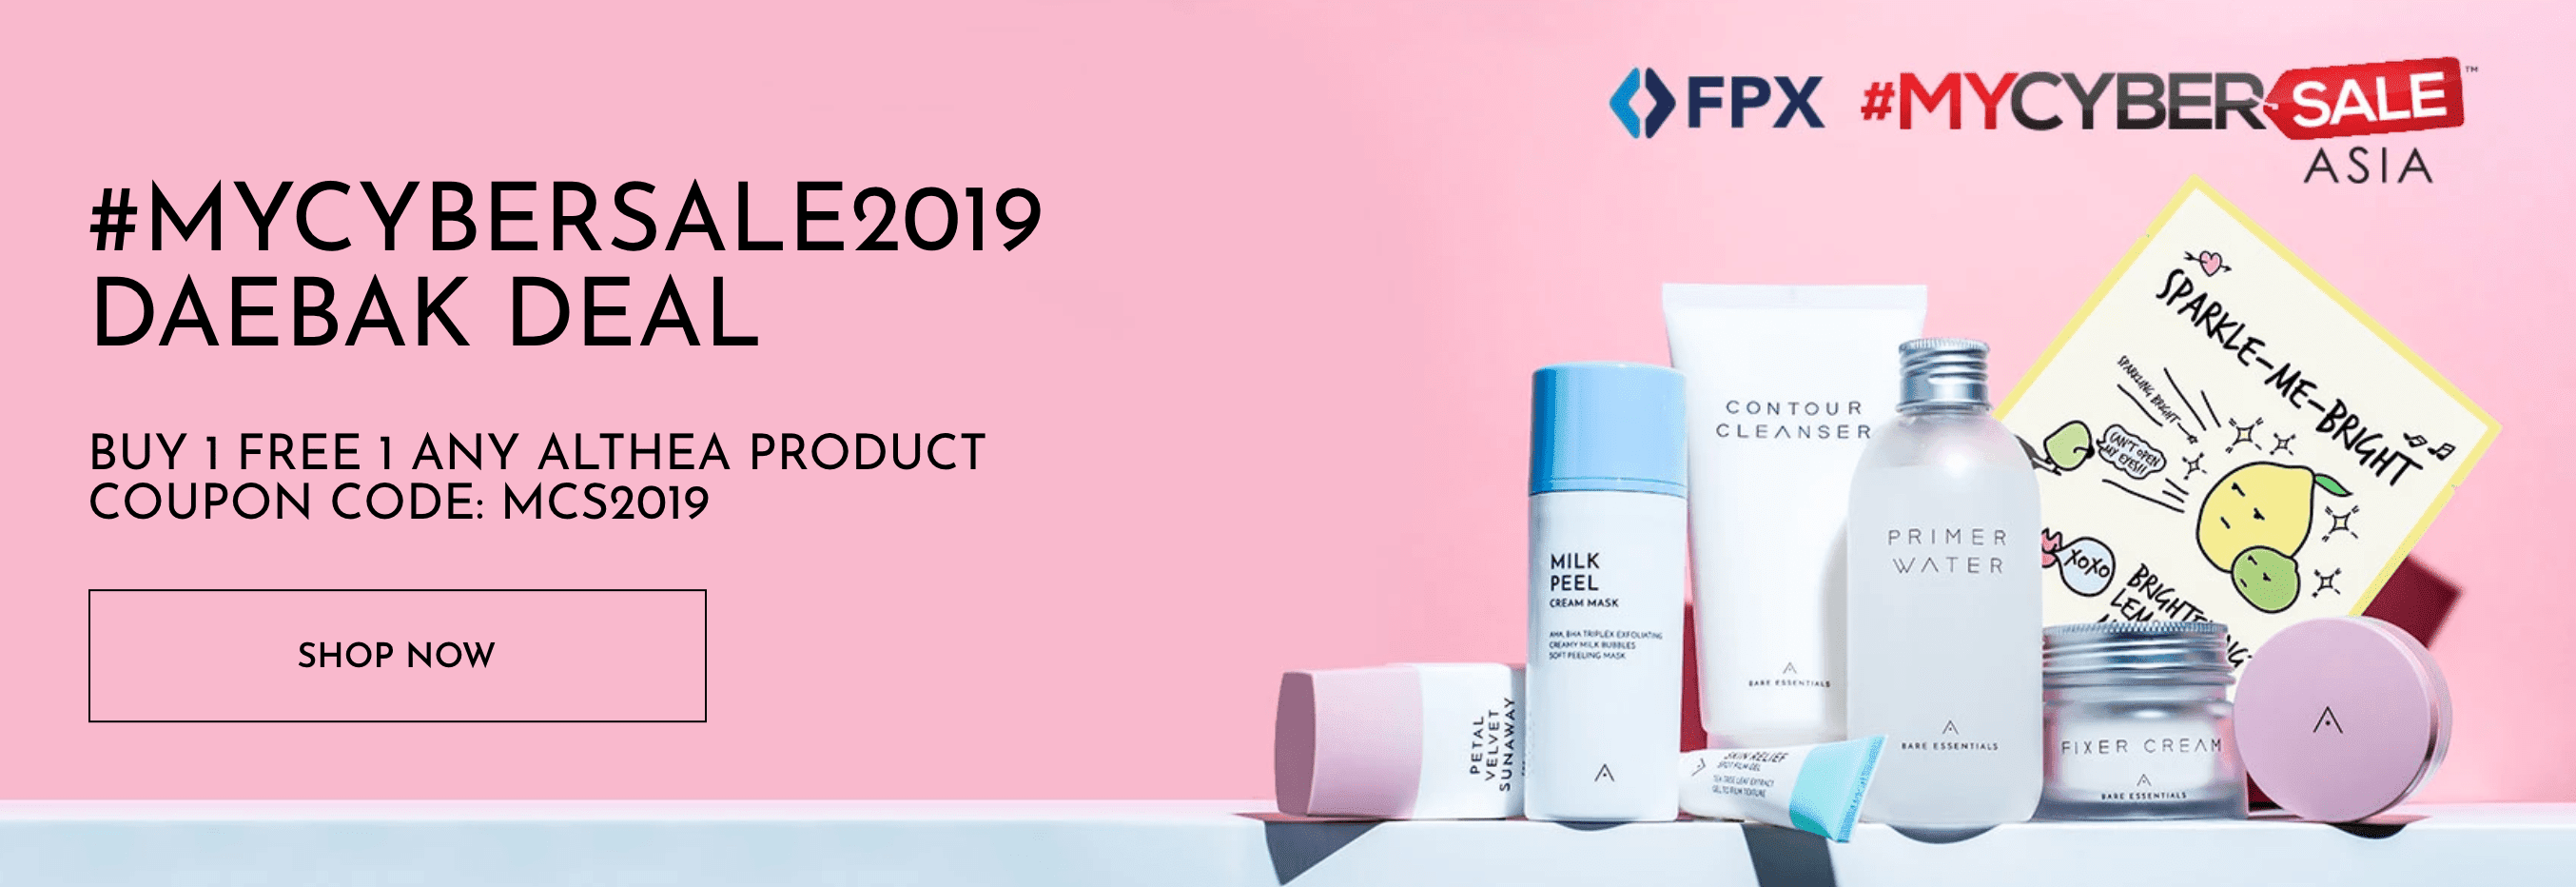 mycybersale althea 2019